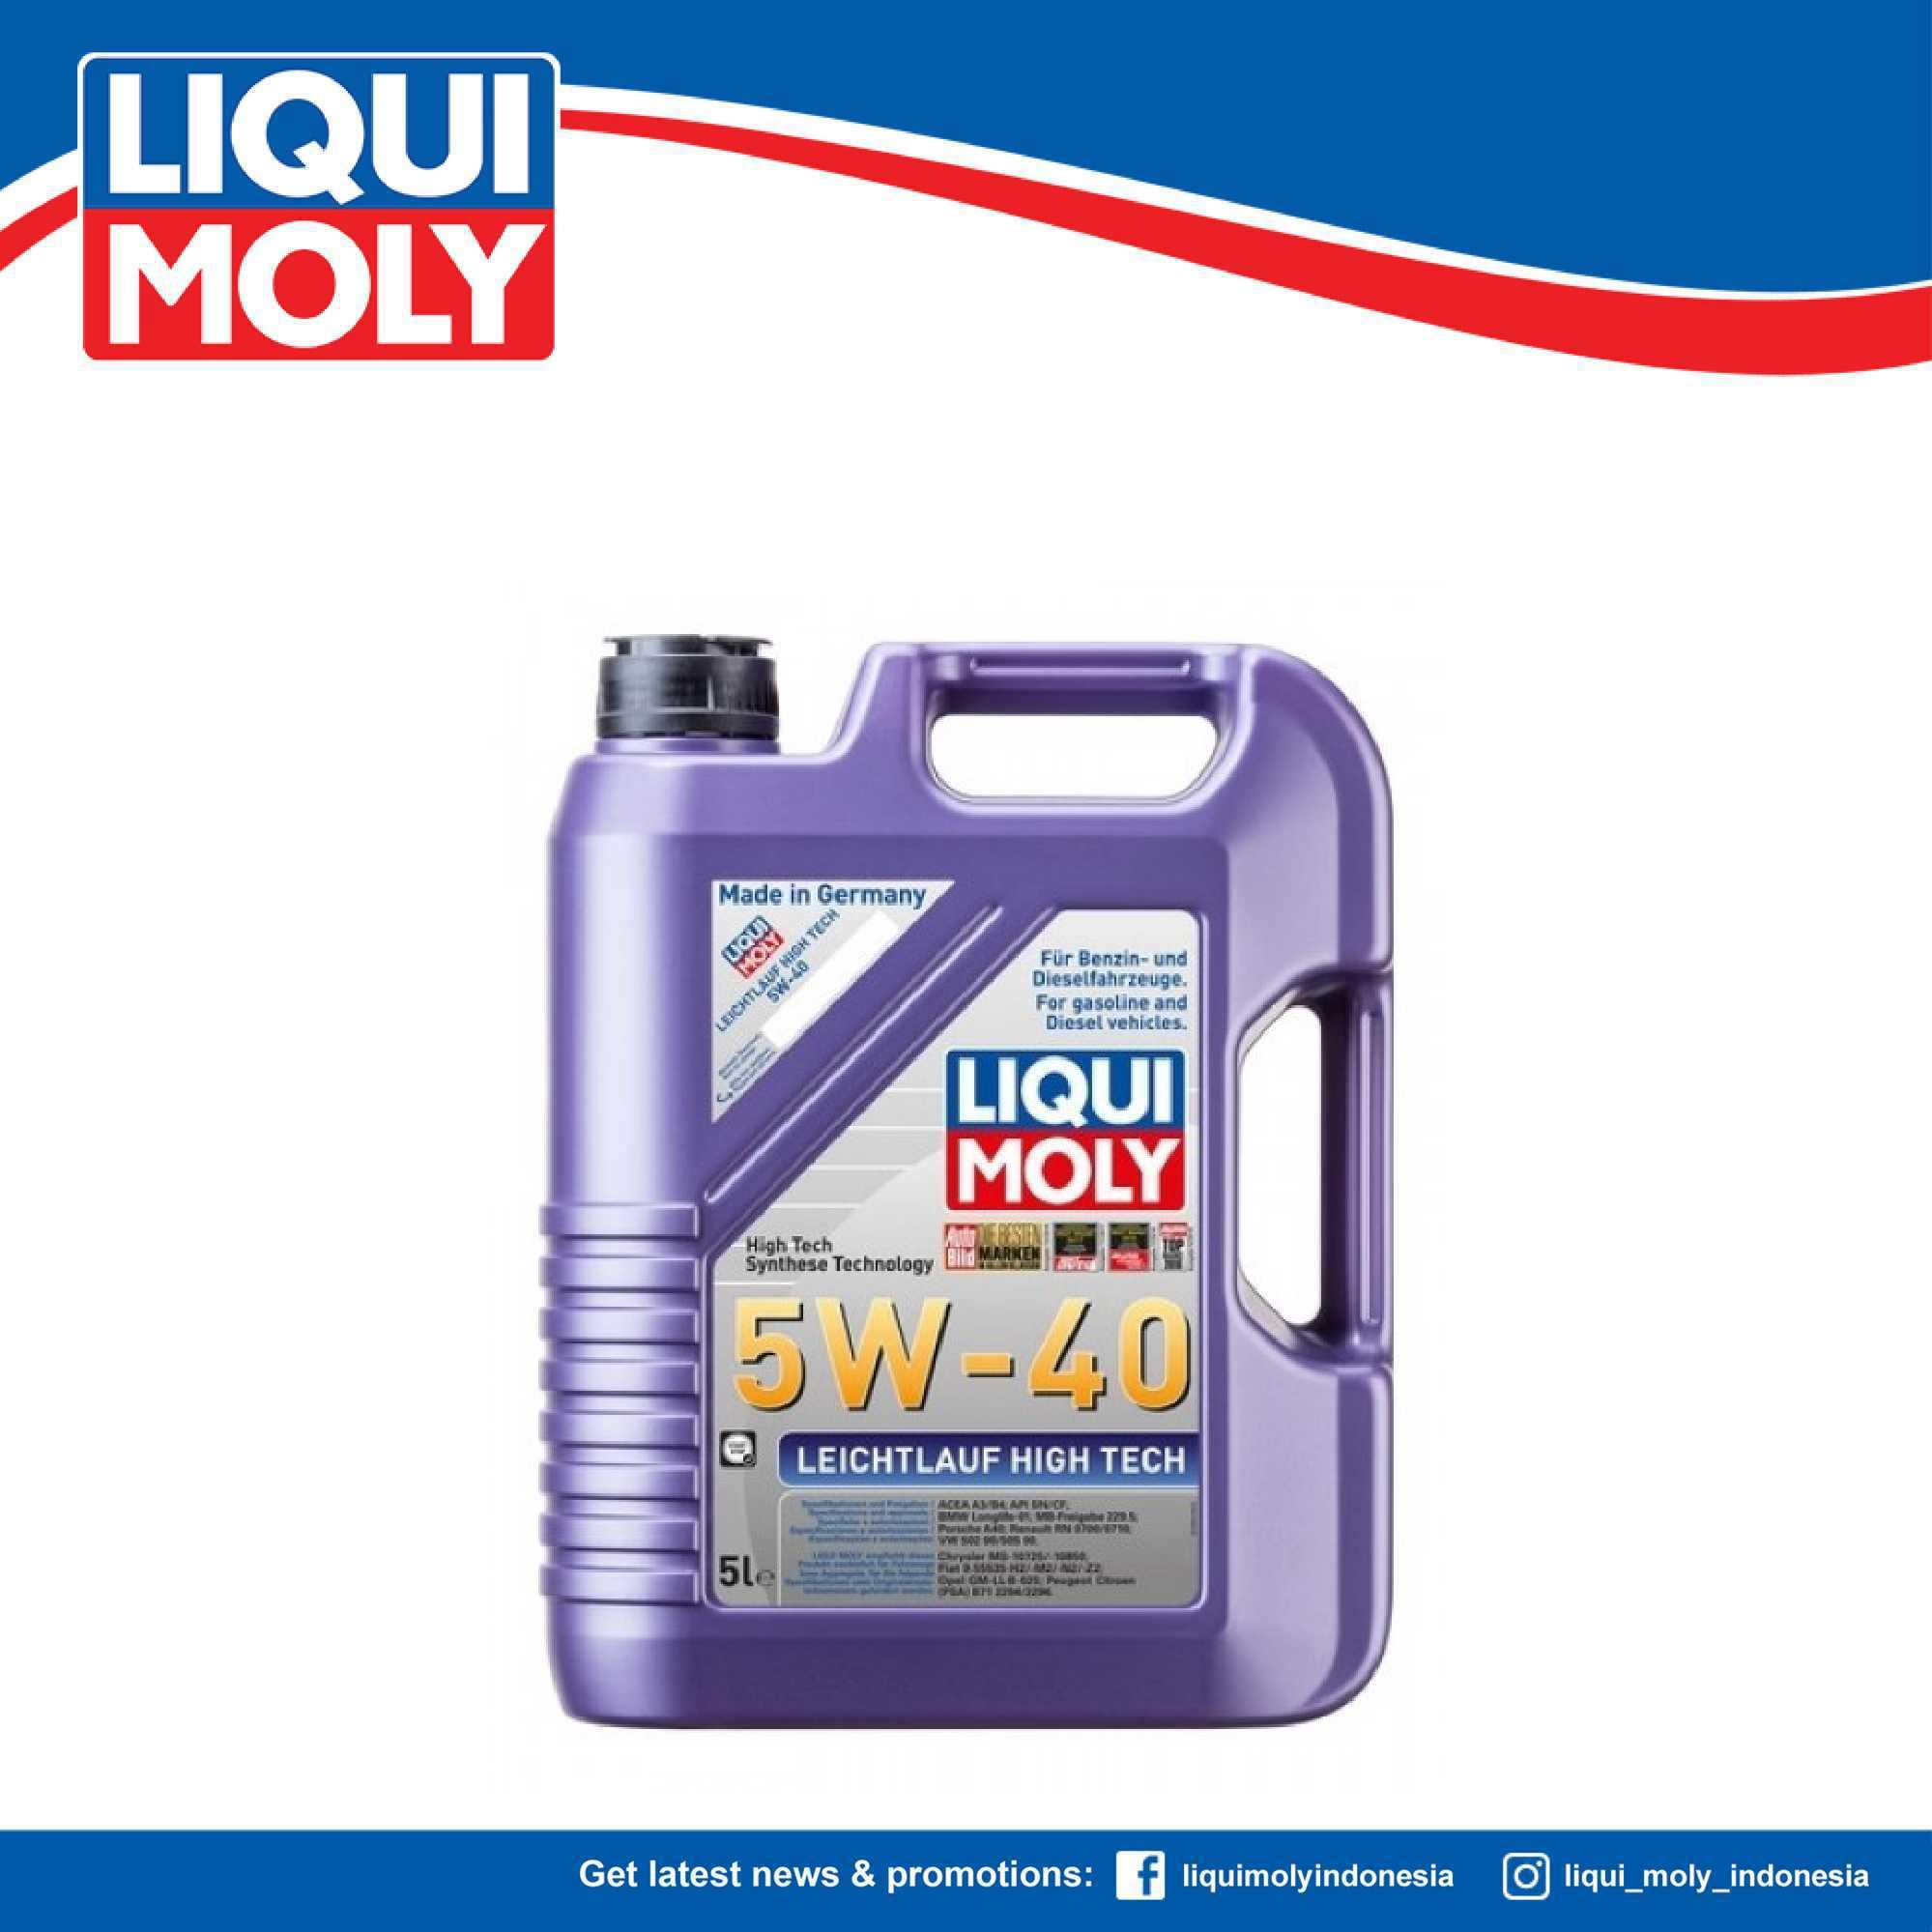 Liqui Moly Leichtlauf High Tech 5W40 Engine Oil 5L - Oli Mobil 2328